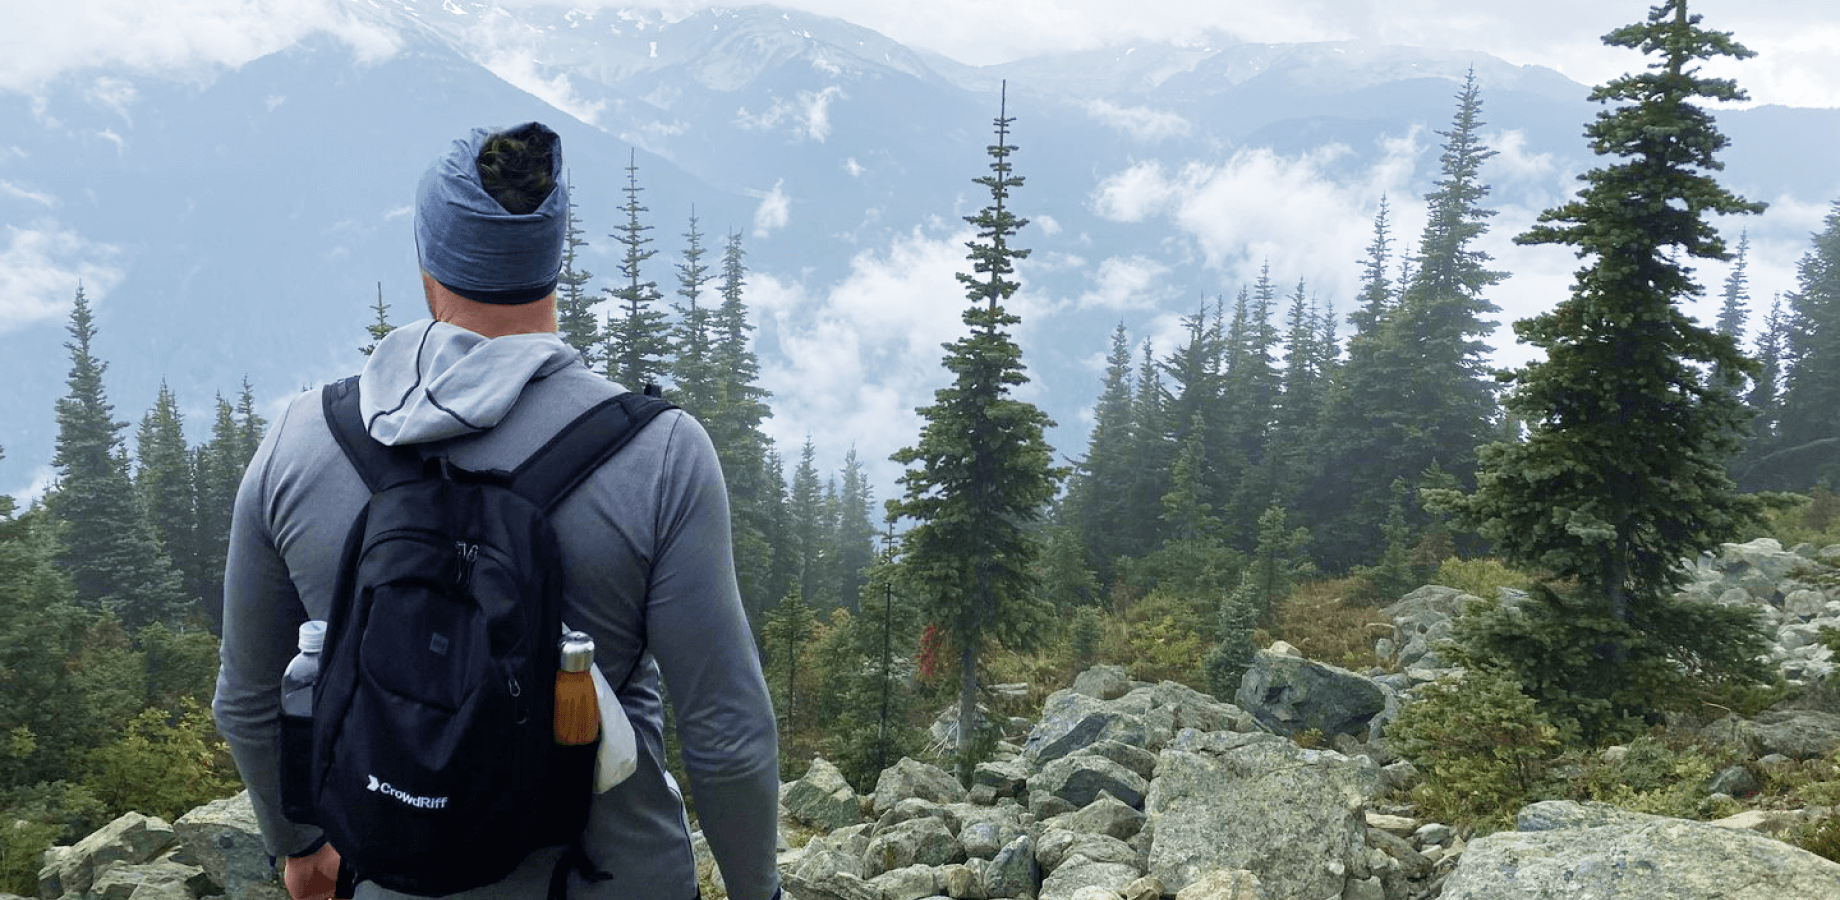 CrowdRiff employee looking over a mountainous landscape among trees